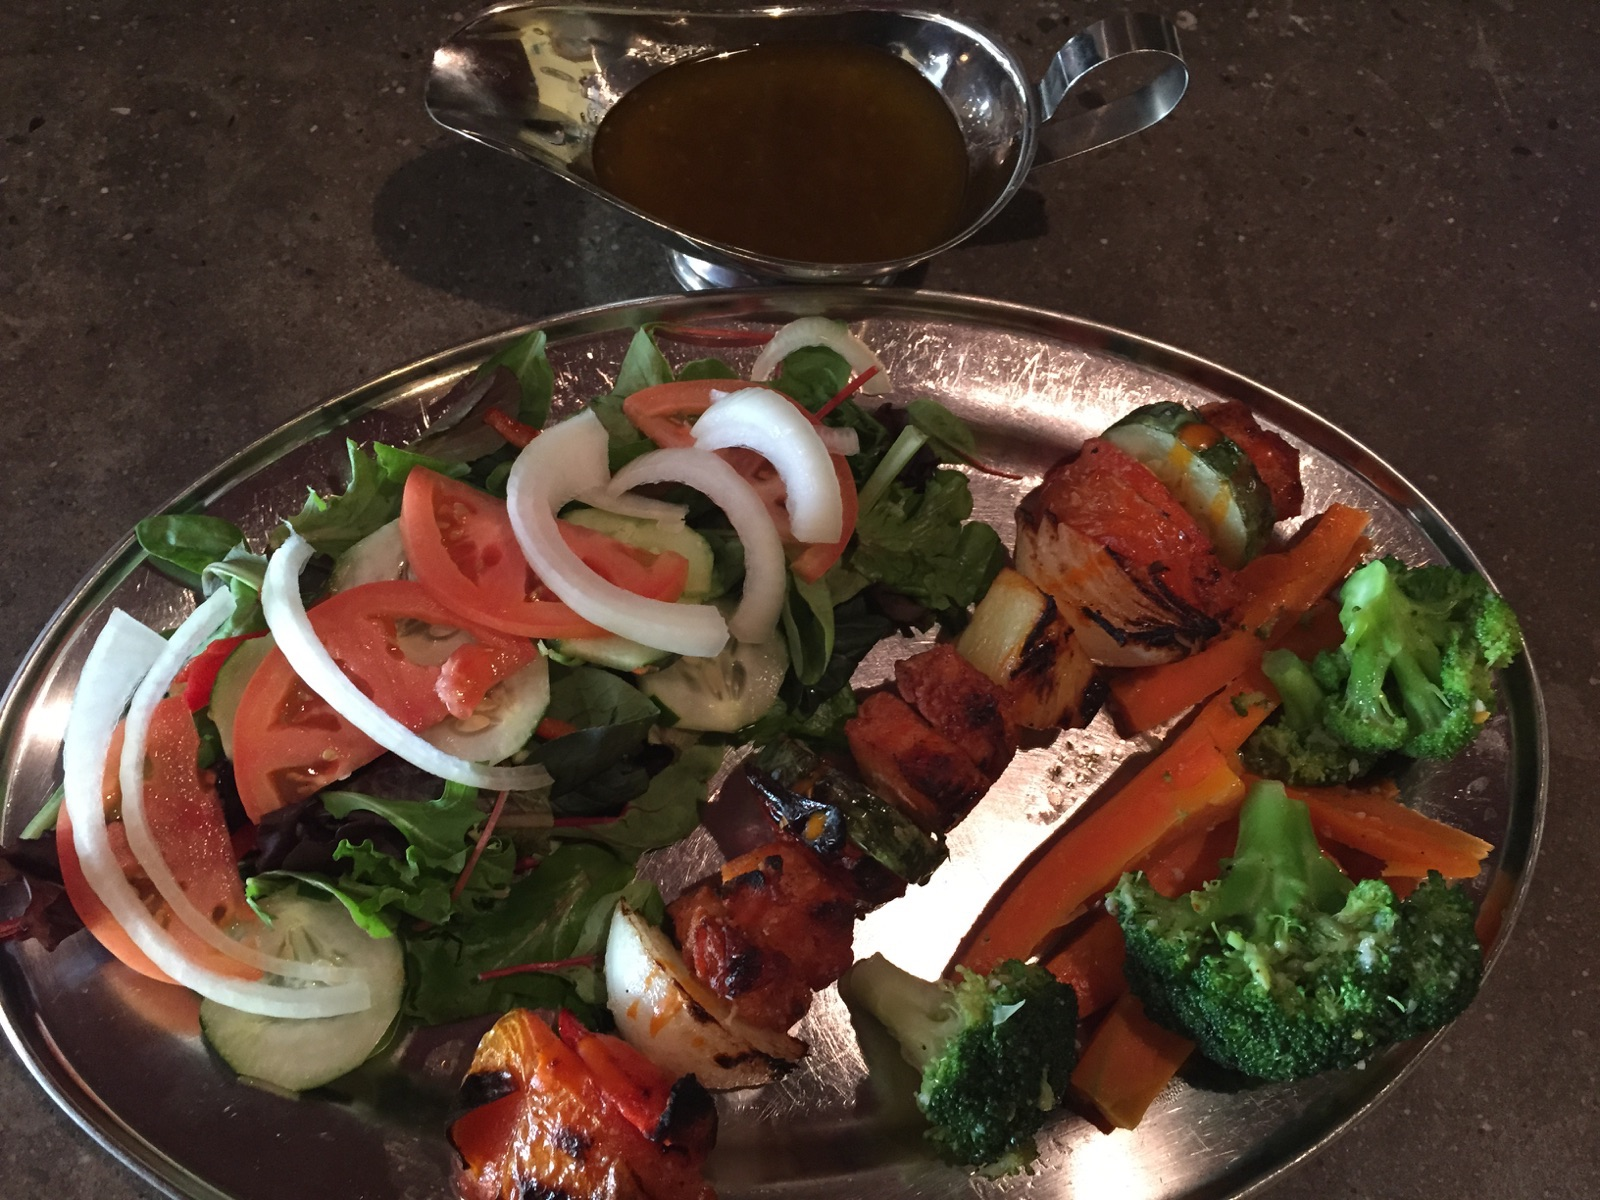 Vegetarian Shish-Kabobs